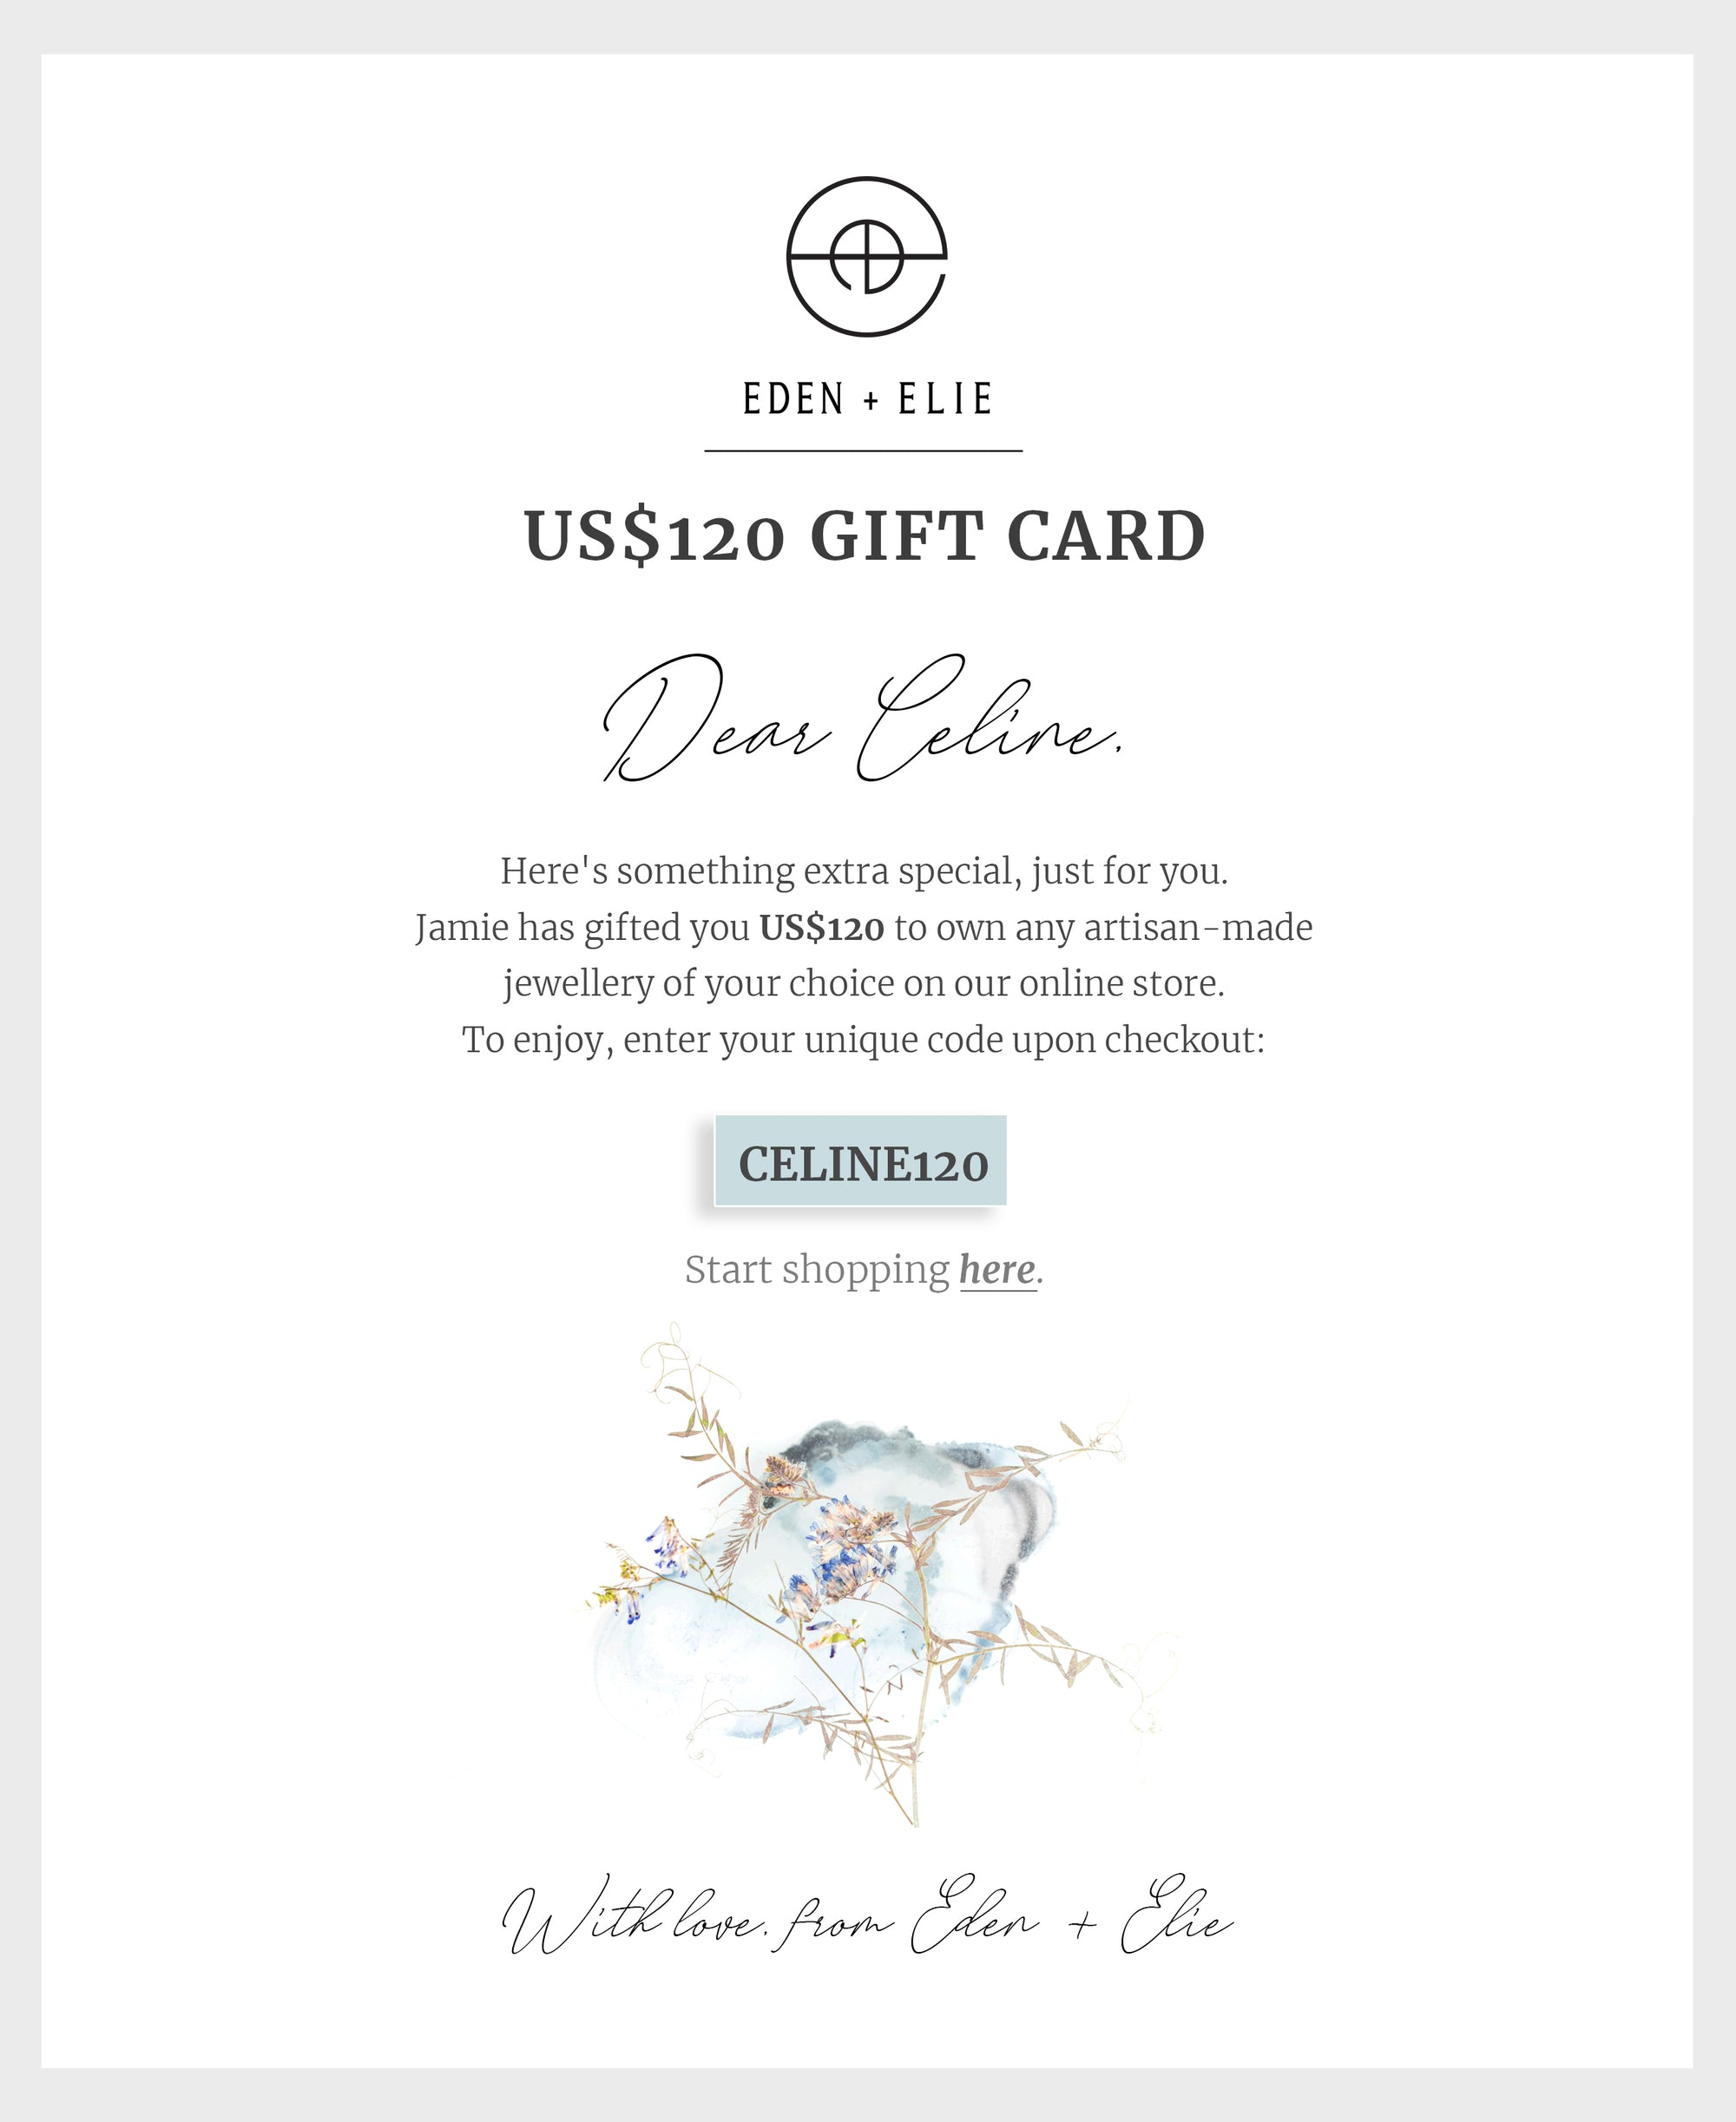 EDEN + ELIE Personalized E-Gift Card - $120